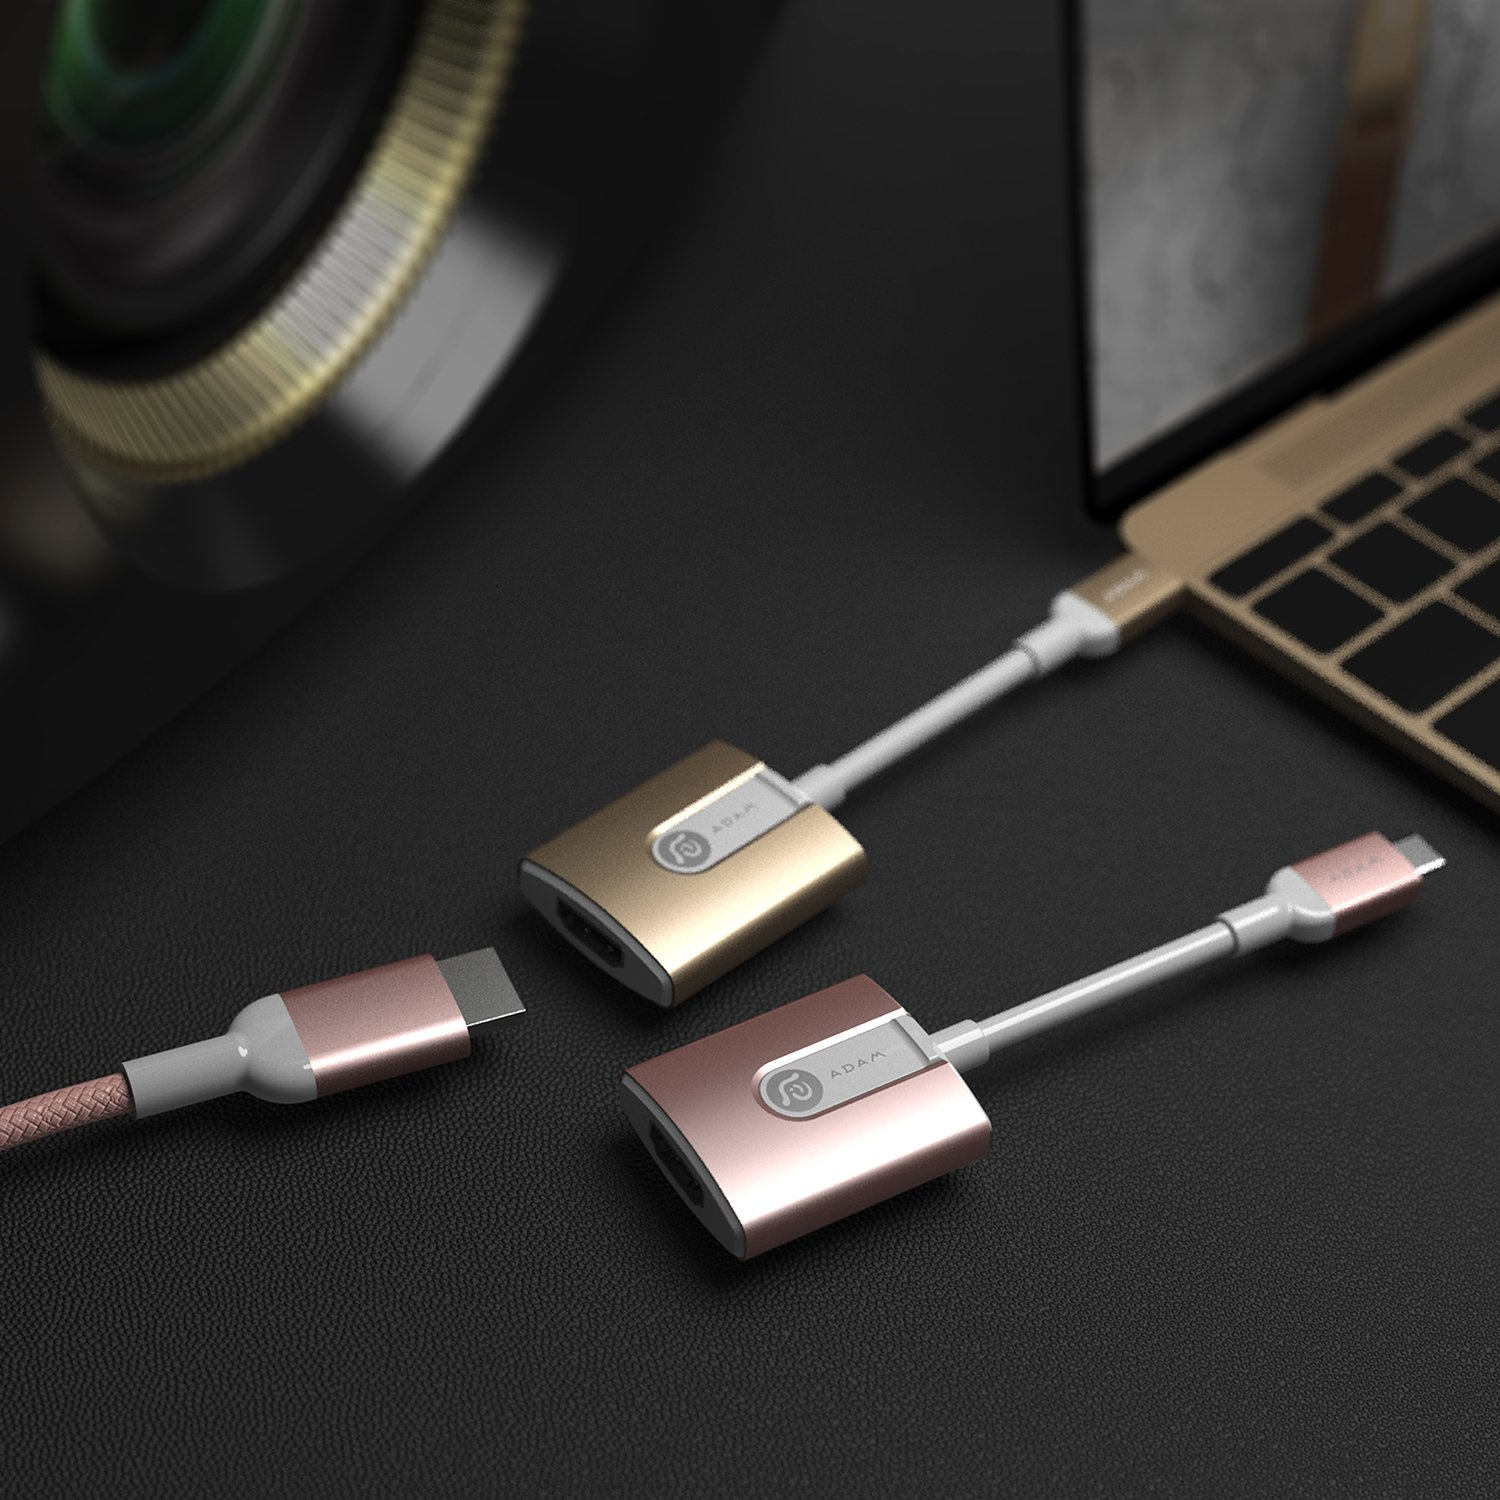 A ADAM ELEMENTS Adam Elements USB Type C to HDMI Adapter Connector Cable In Designer Colors, Connect Macbook or Notebook to TV or Monitor, Supports 1080P & Ultra HD 4K - Gold by A ADAM ELEMENTS (Image #1)